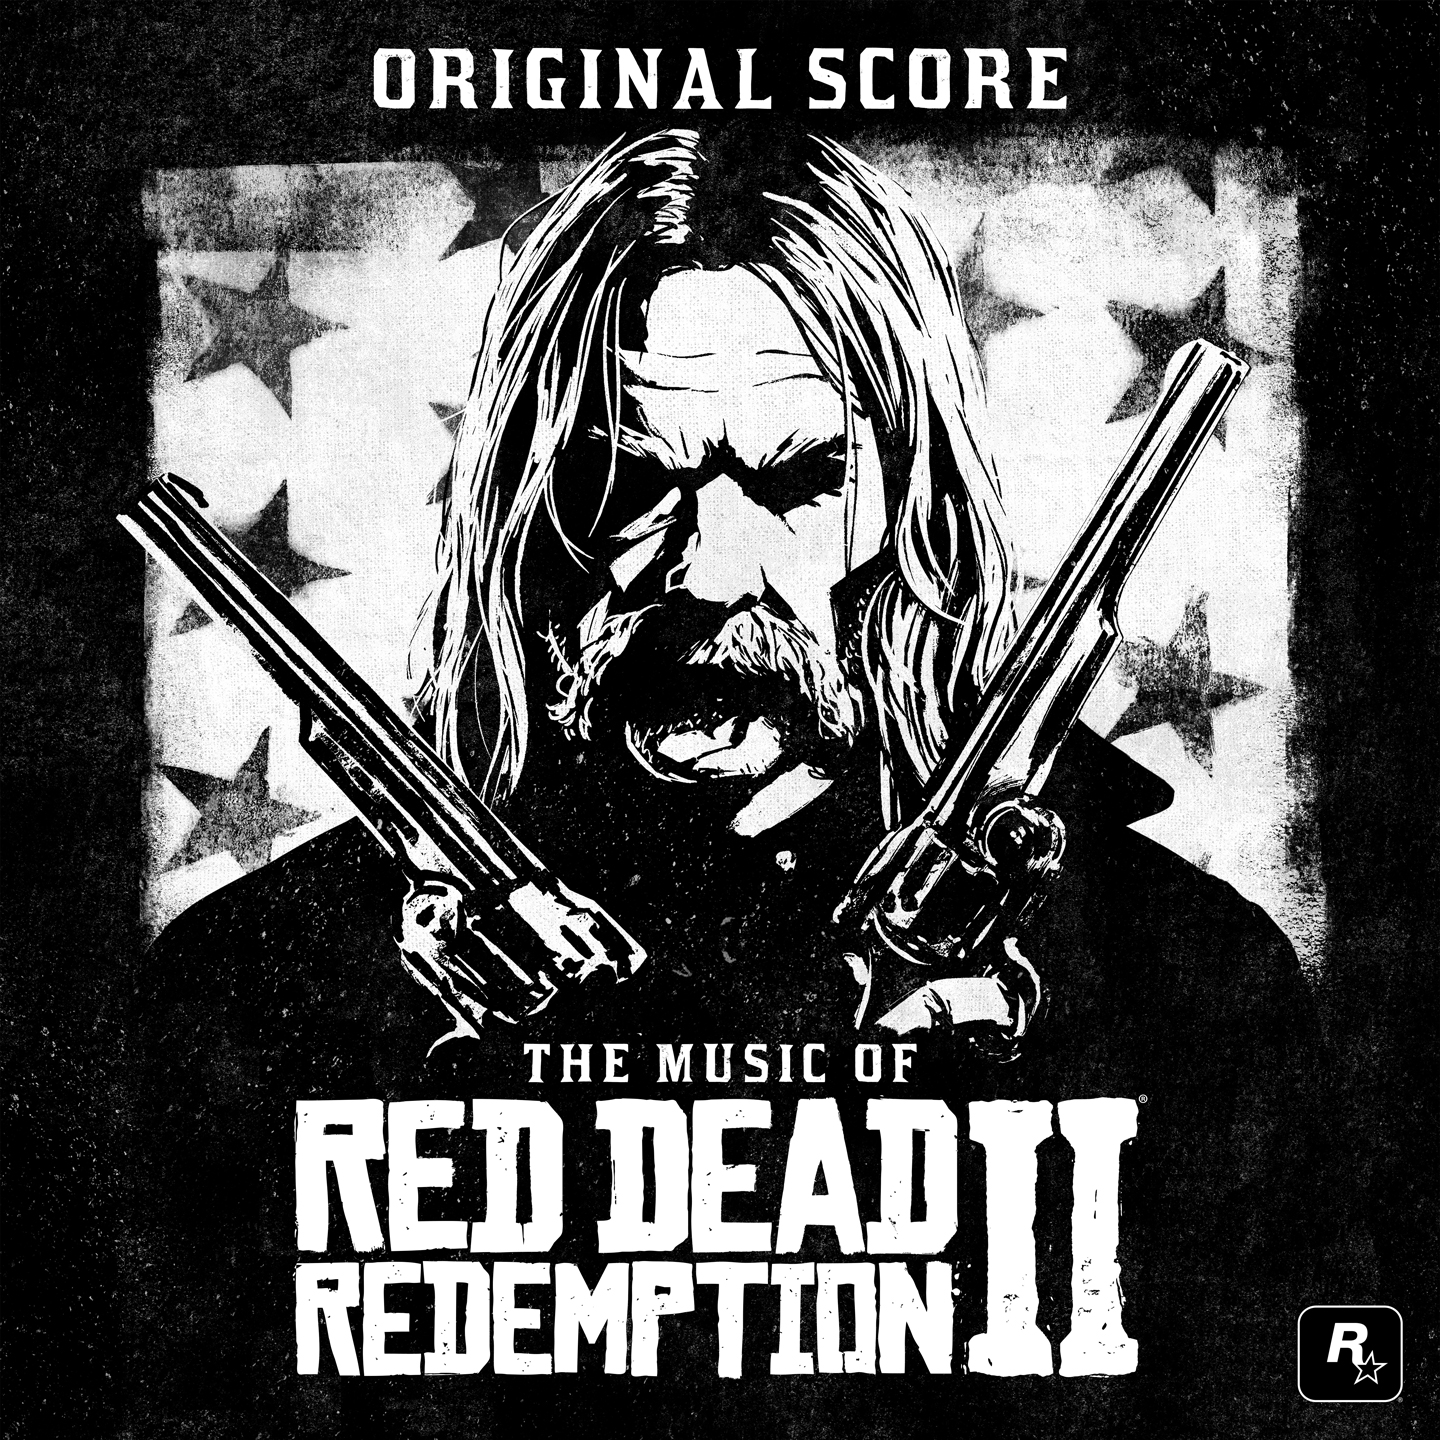 rdr2-artwork-35-hd.jpg